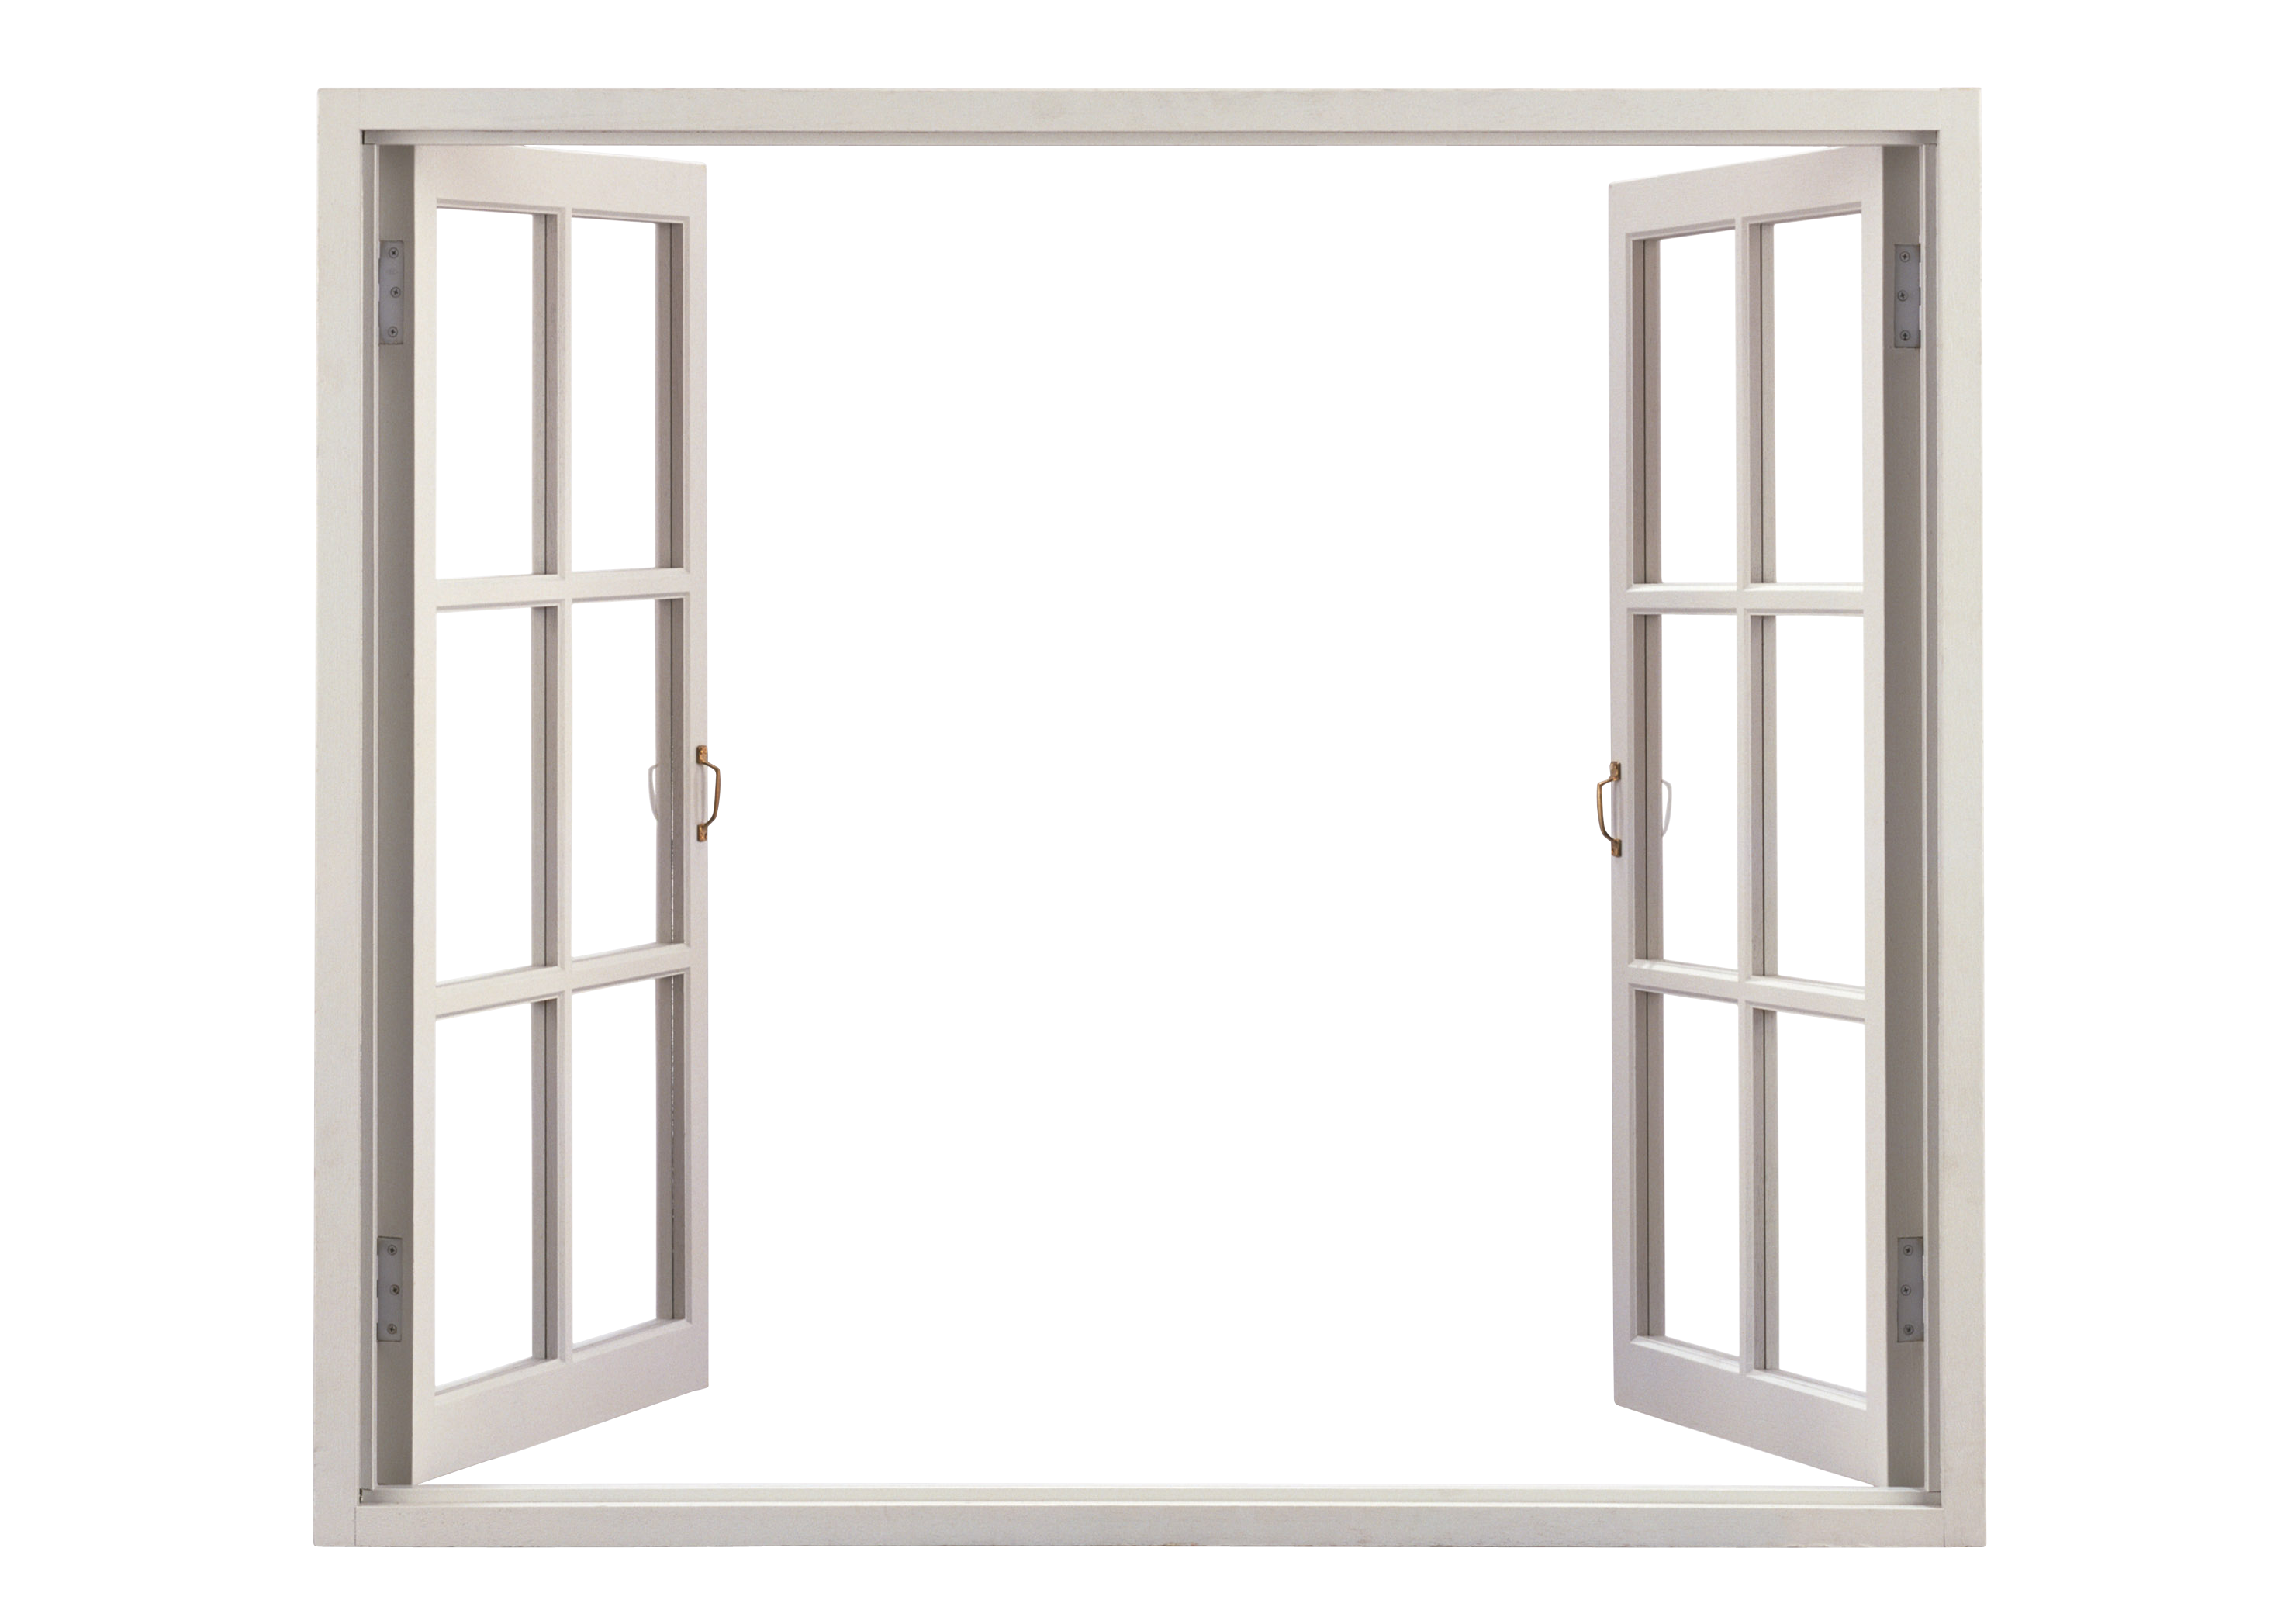 Window clipart window frame Window Clipart clipart window Pictures